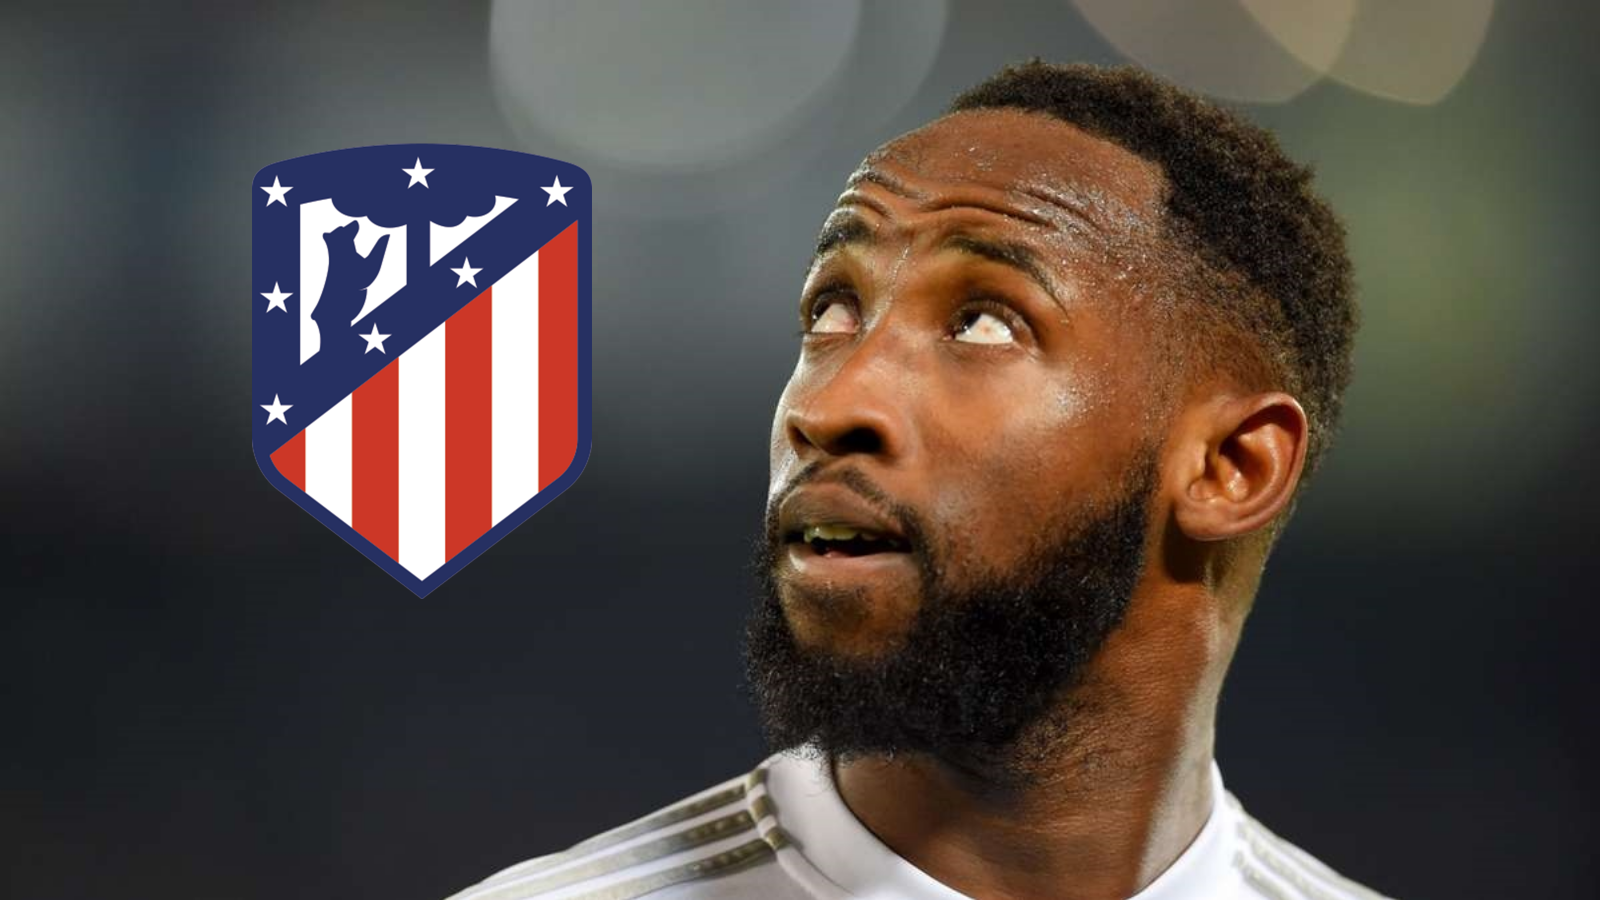 Atletico Madrid complete Dembele loan with €33.5 million purchase option